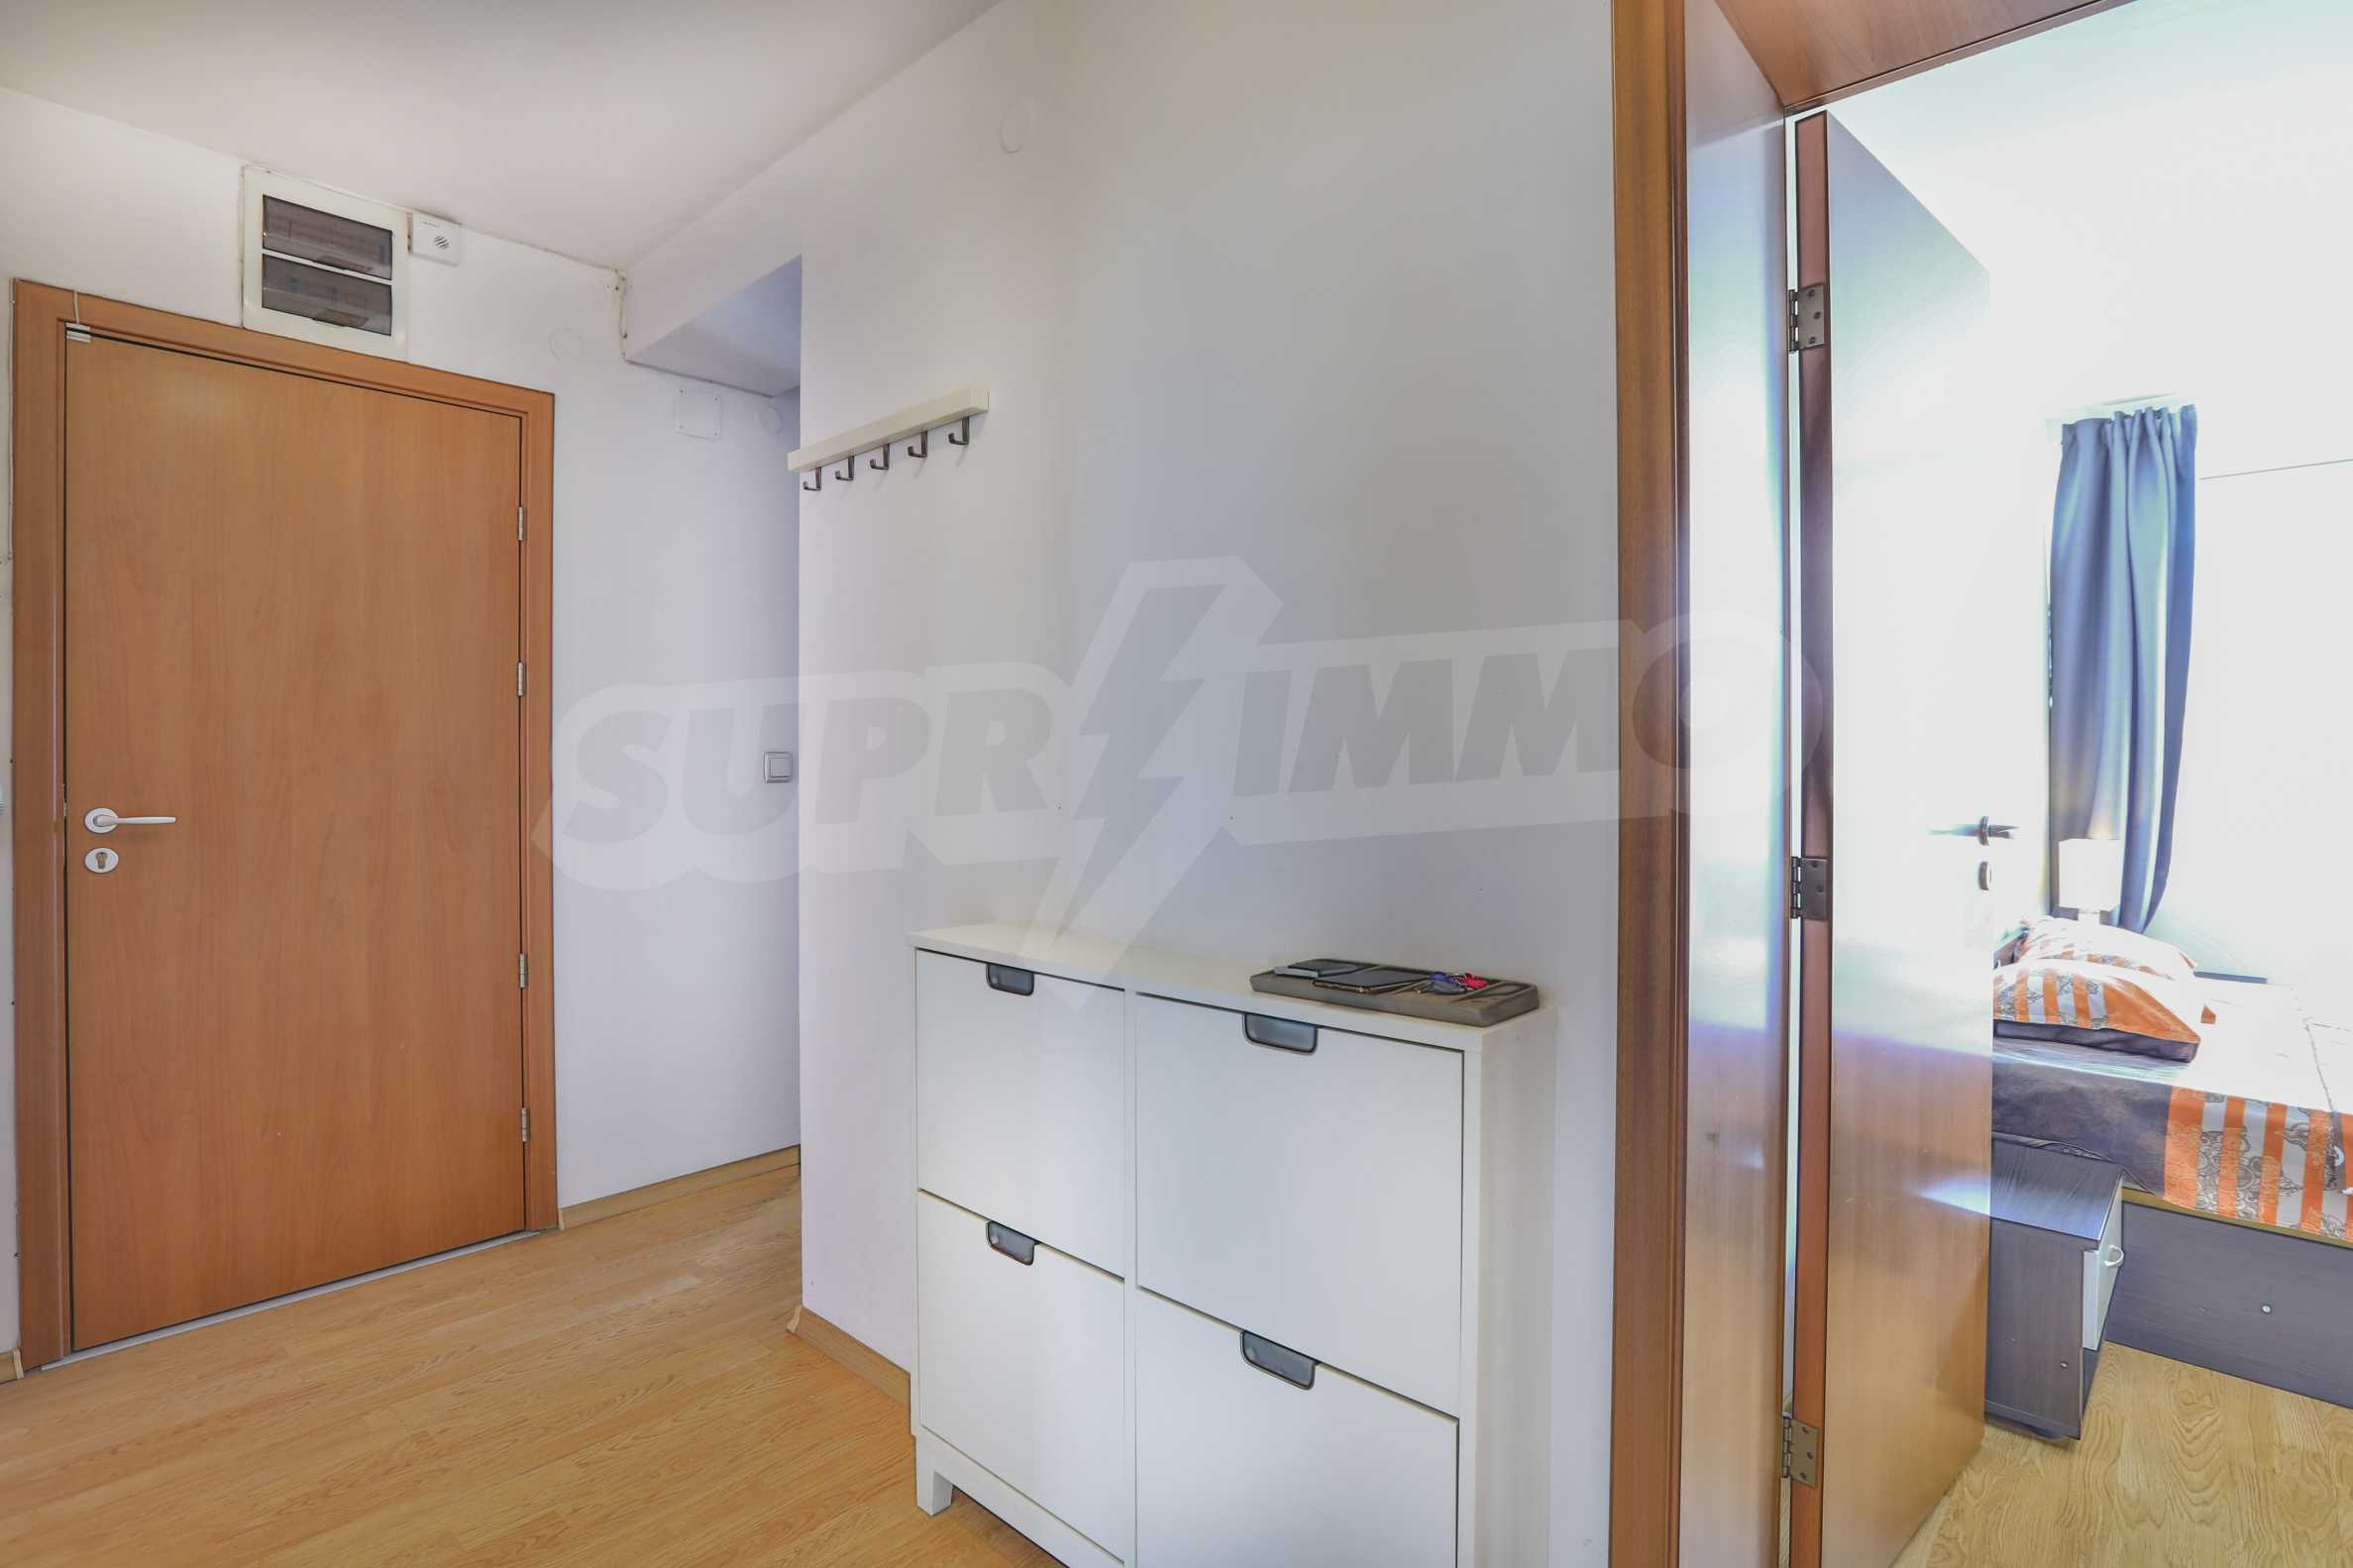 Two-bedroom apartment in the center with high rating on Airbnb 8